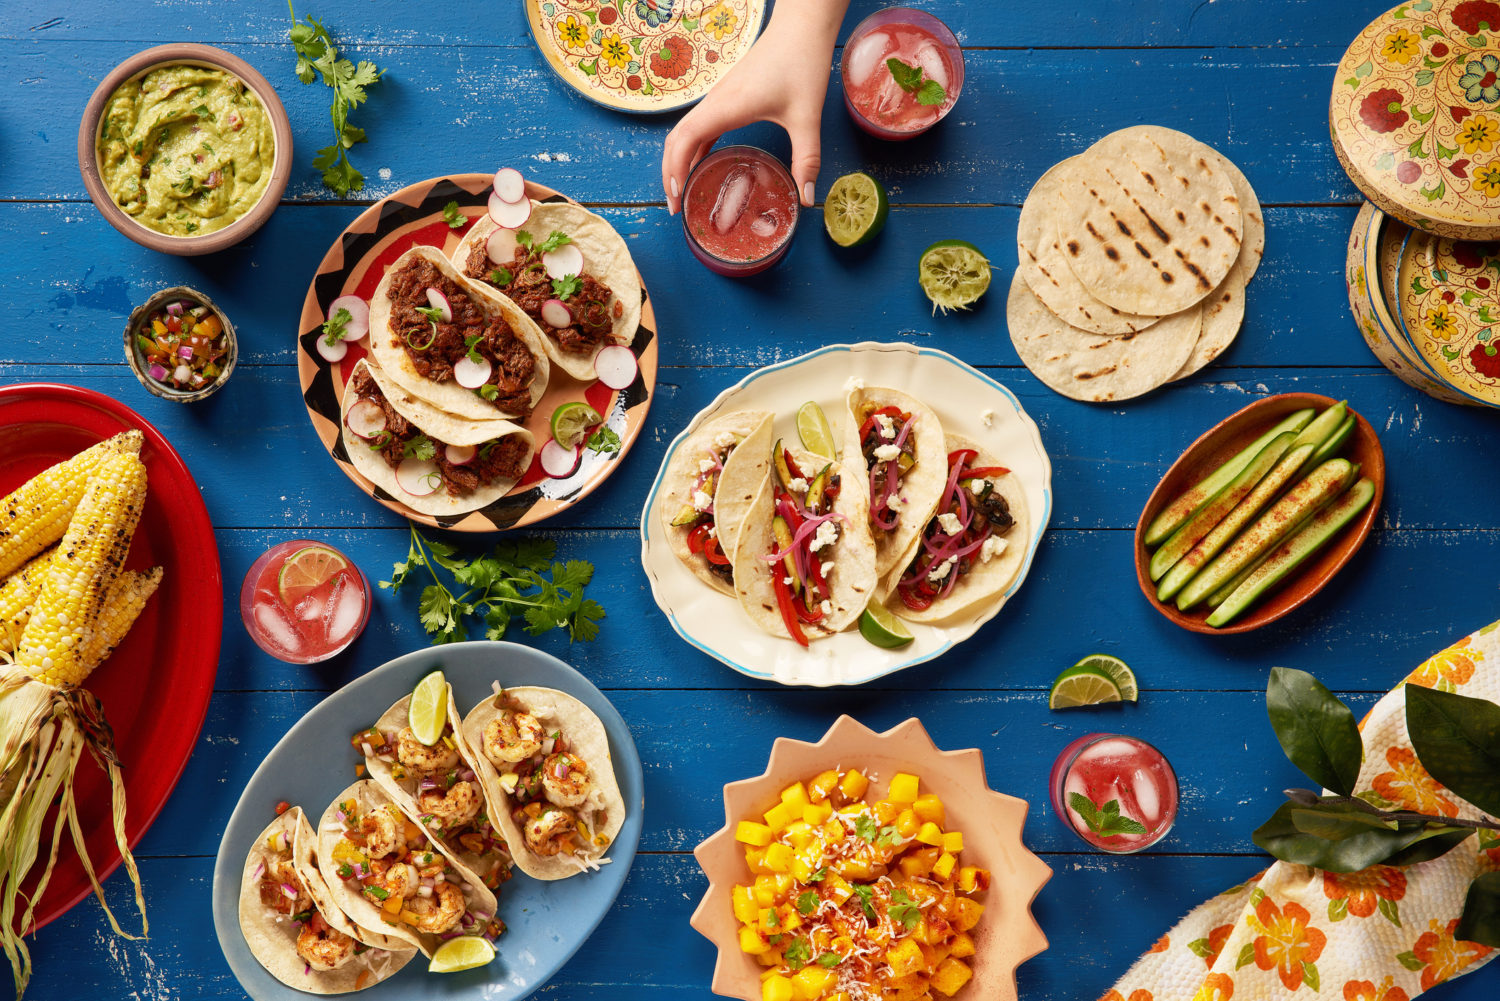 Where To Order Cinco De Mayo To Go In Phoenix